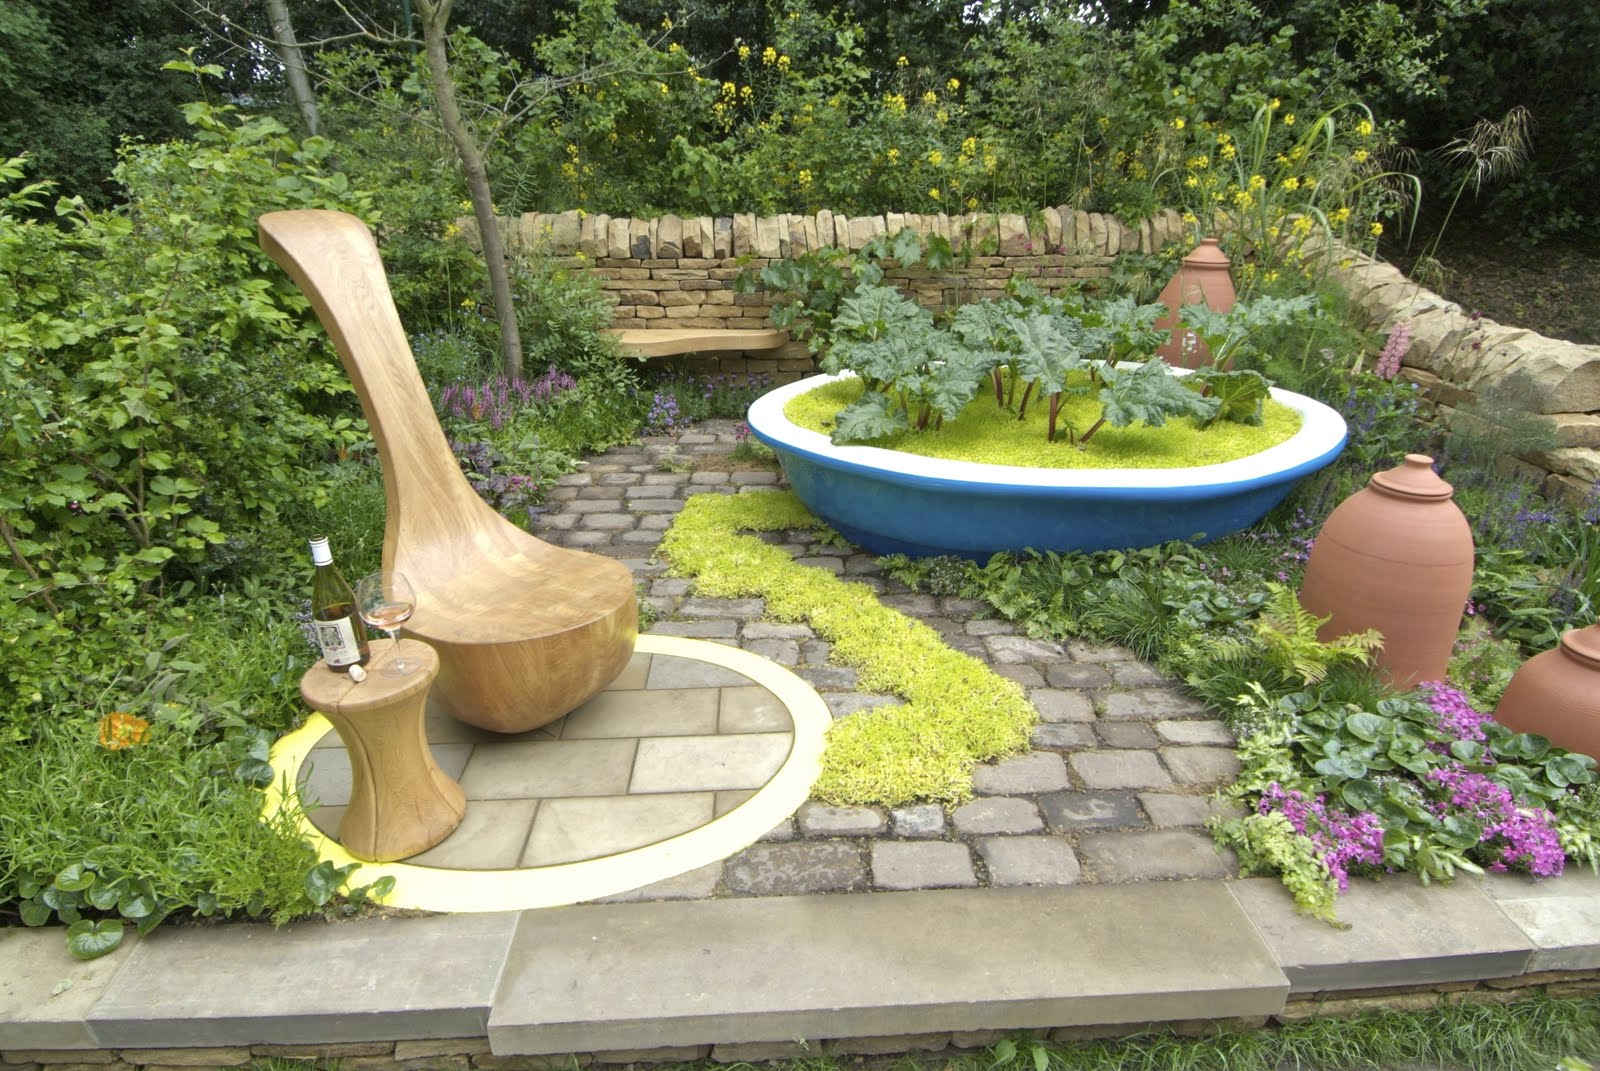 LANDSCAPE DESIGN + MORE: WHIMSY IN THE GARDEN